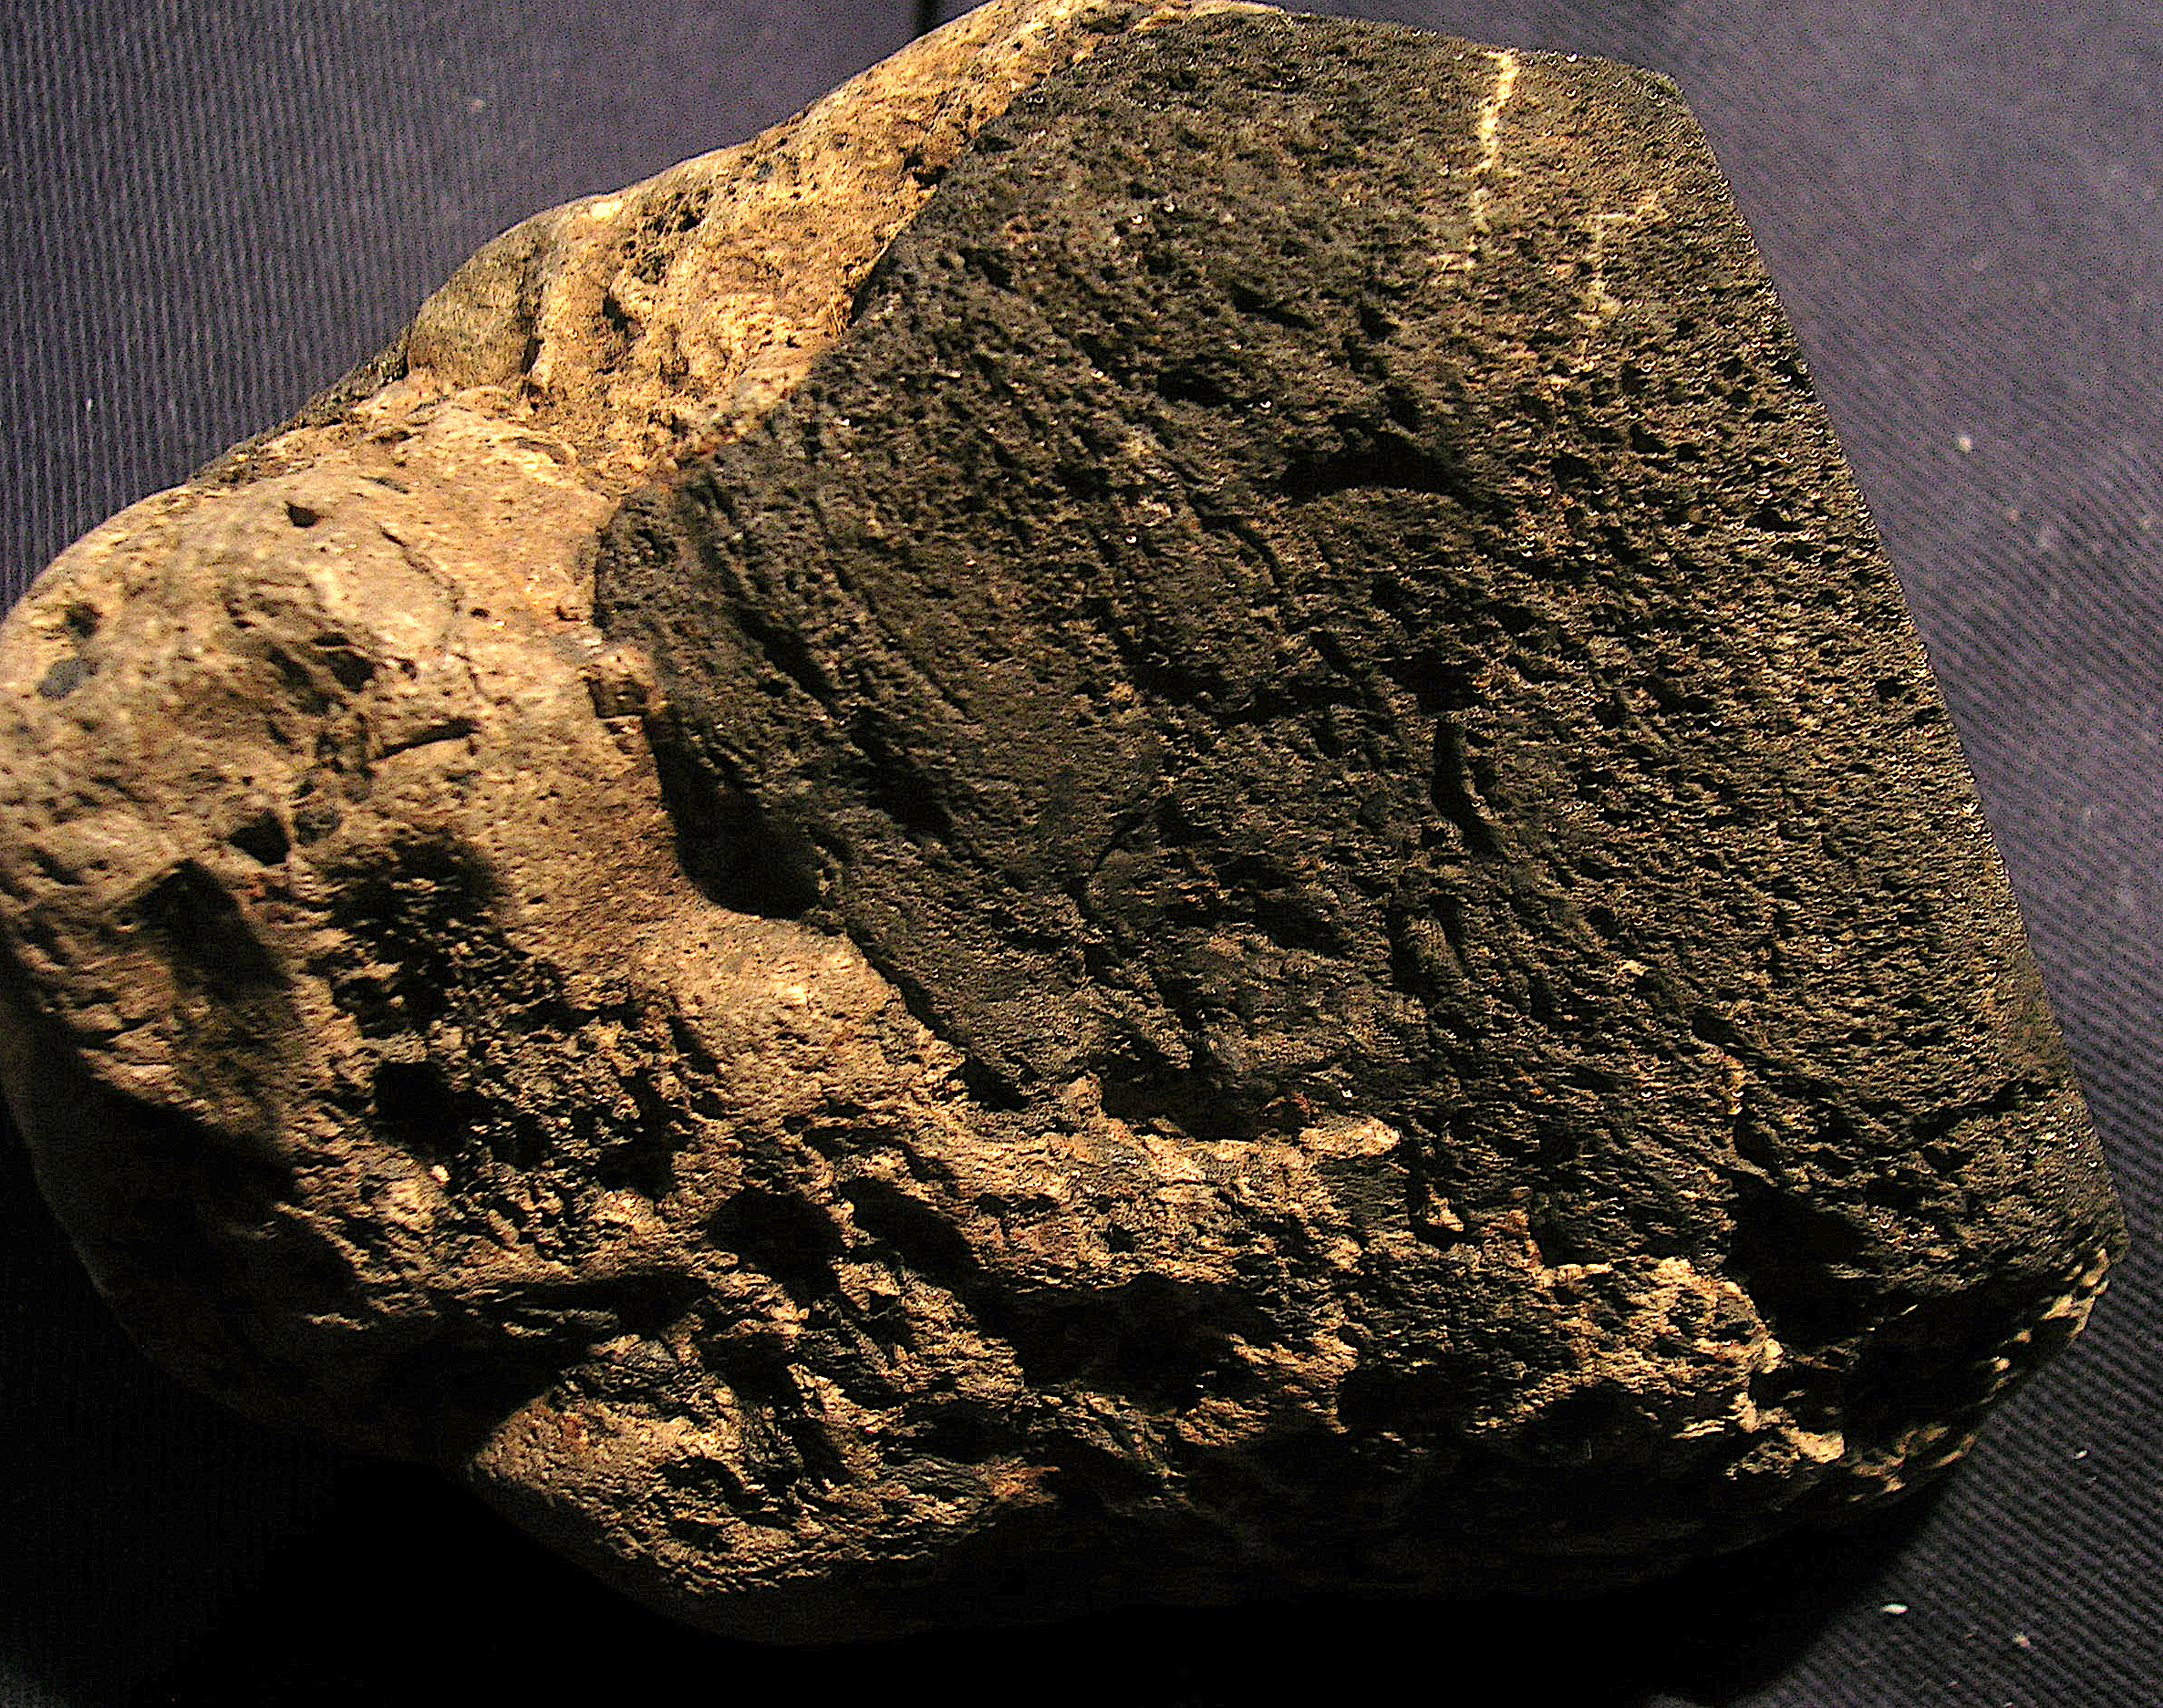 chiemite on Muschelkalk cobble, Saarland meteorite impact site